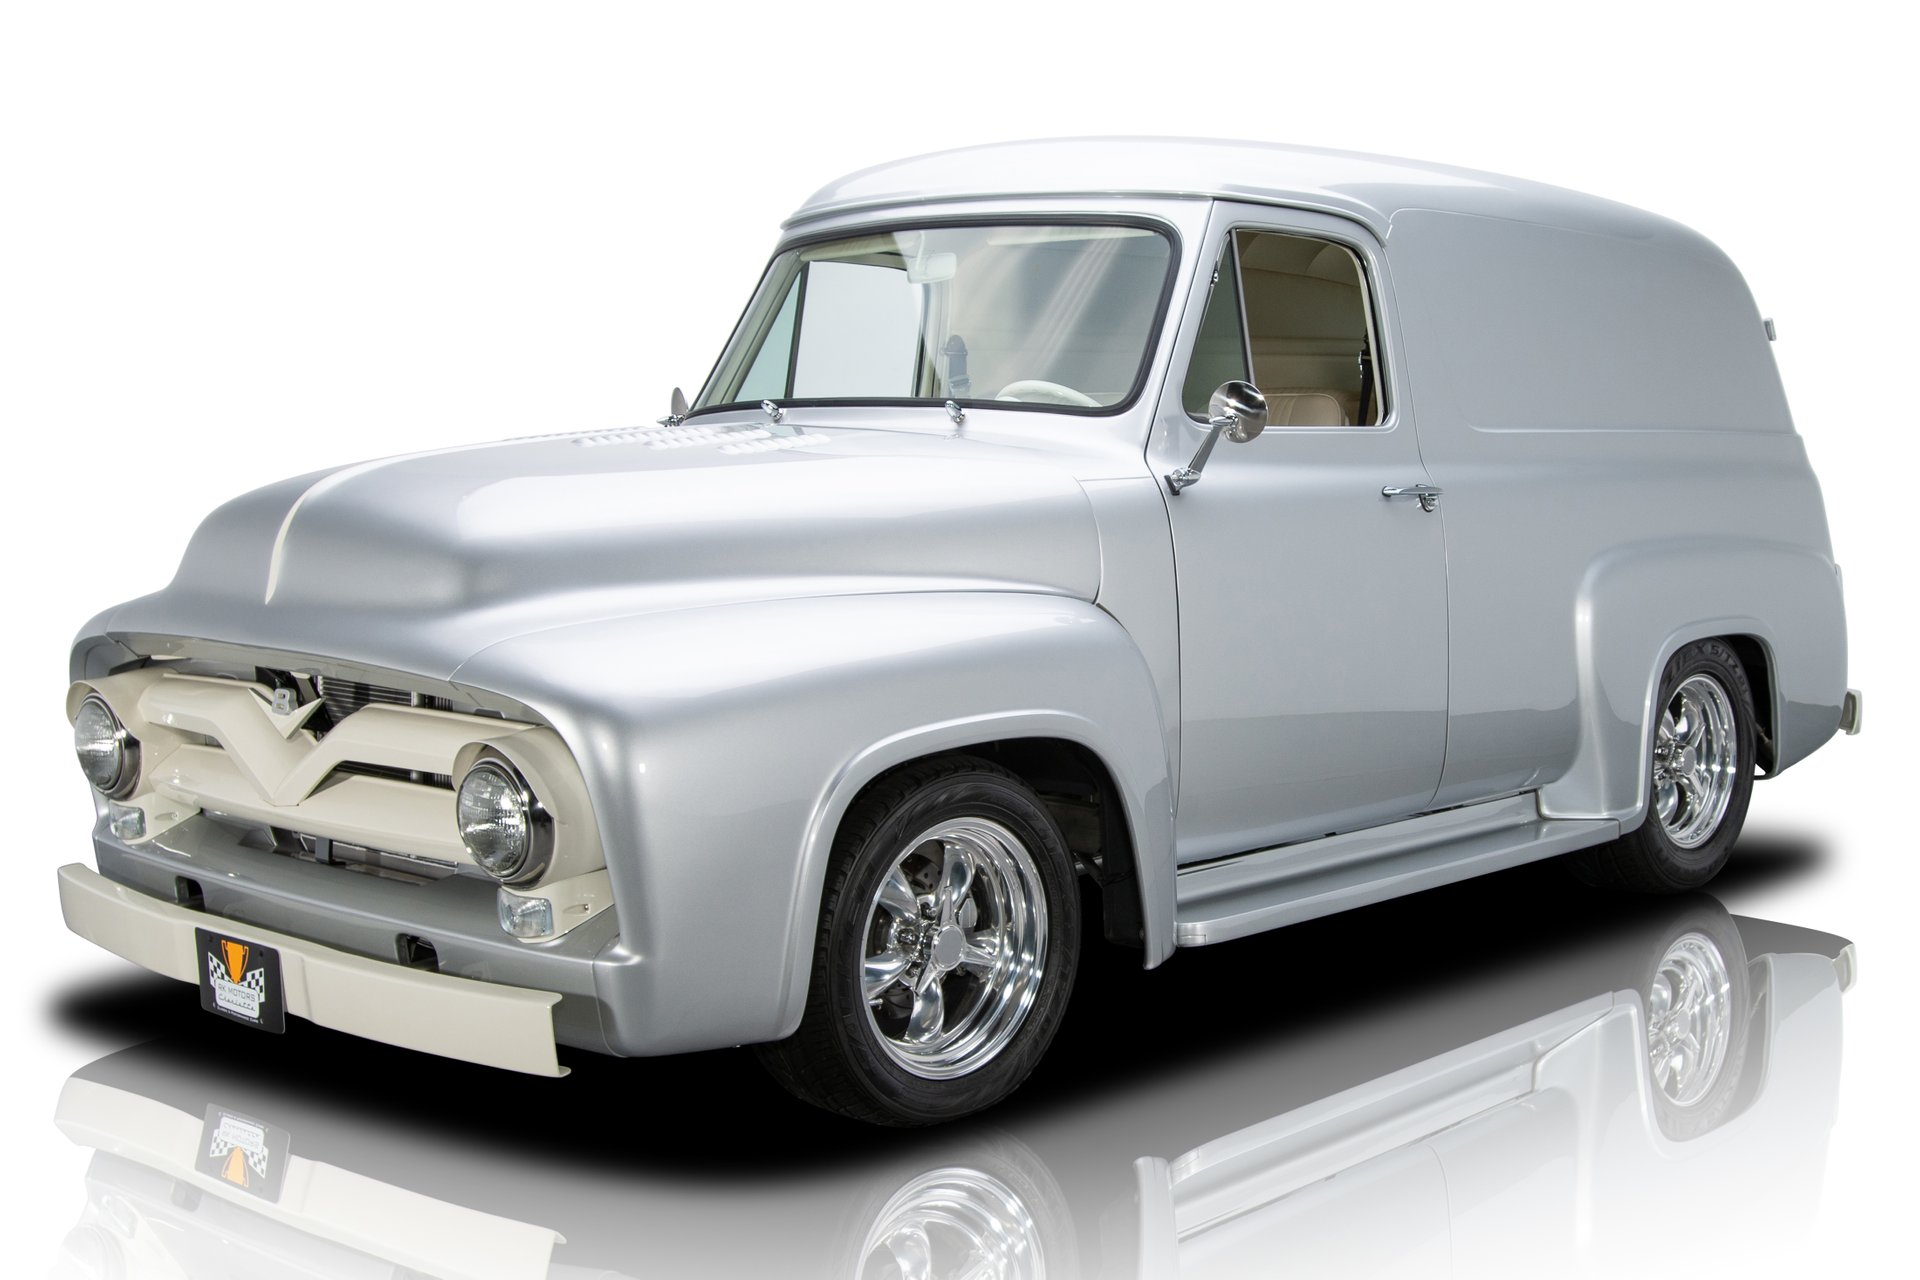 136002 1955 Ford F100 RK Motors Classic Cars for Sale